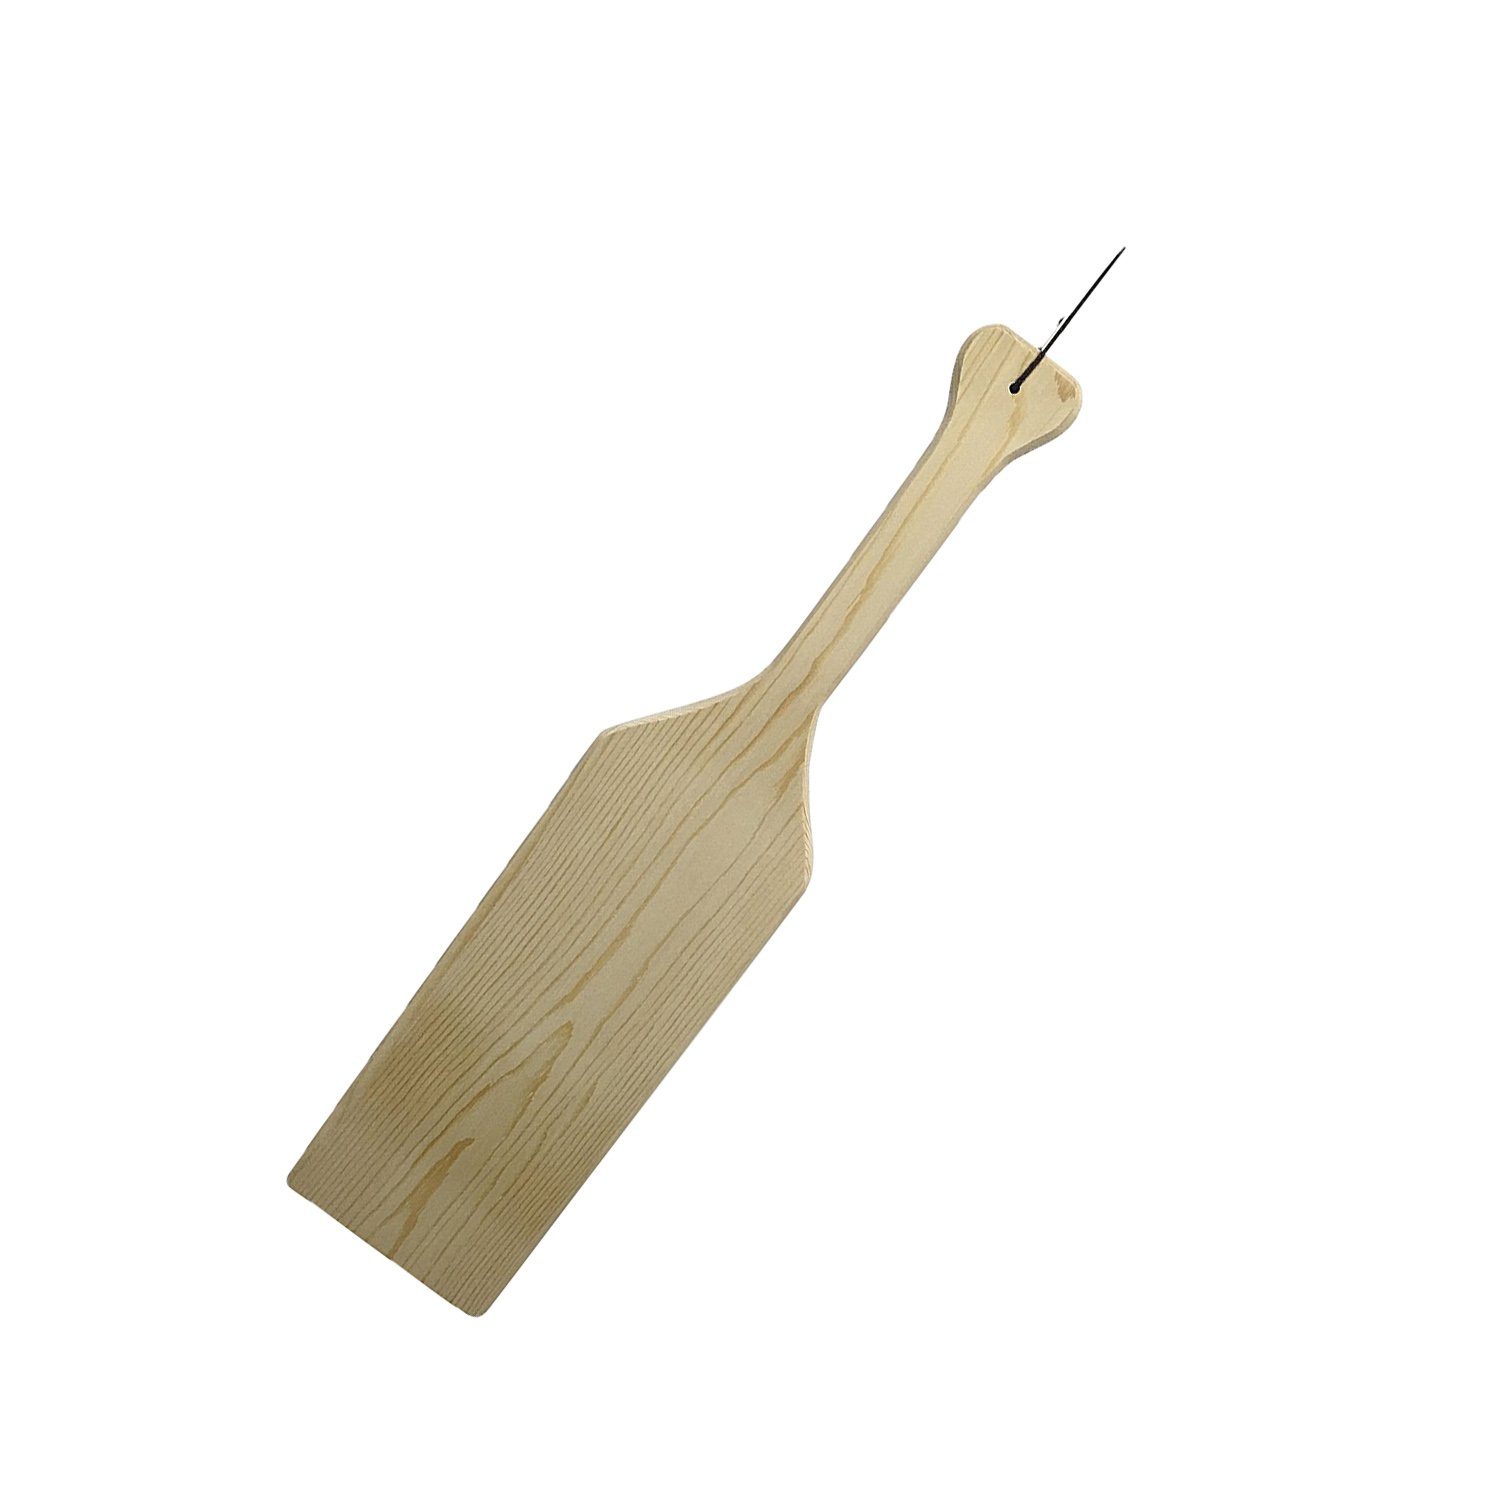 JennyGems Unfinished Pine Wood Greek Fraternity /& Sorority Paddle 24 Inches Meets the 24 Inch Suggested Size Greek Paddle Requirement Greek Life